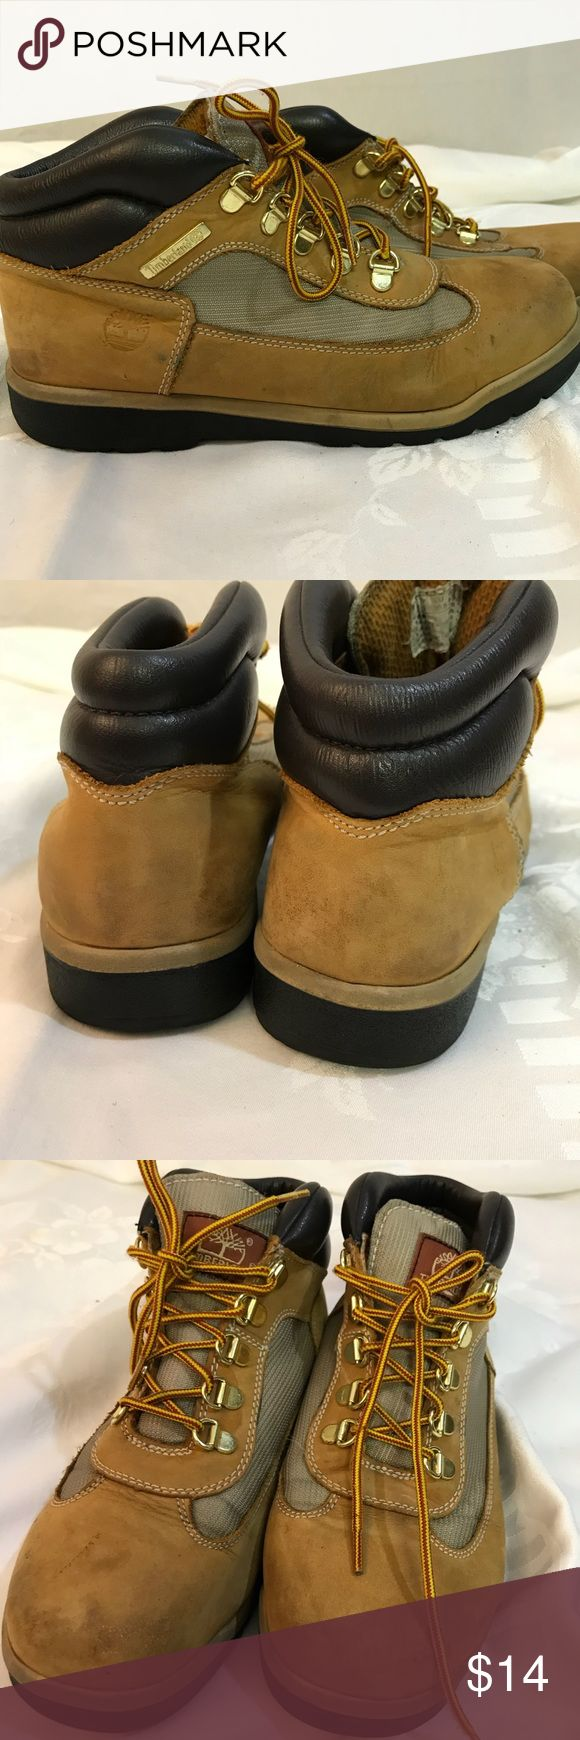 Boys Timberland Boots Timberland Boots . Boys size 6.5. Some wear but a lot of life left. Timberland Shoes Boots